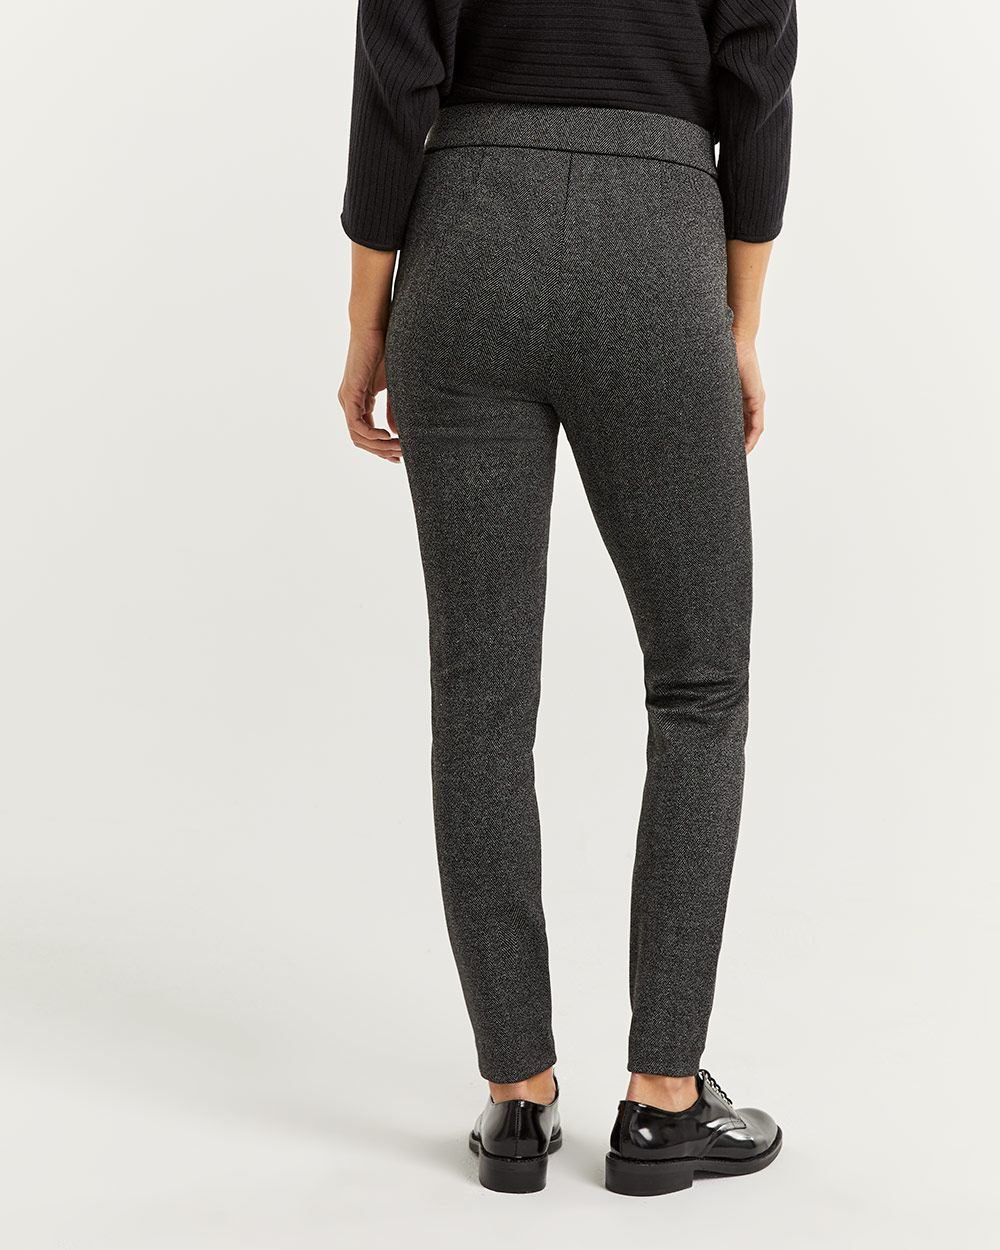 Herringbone Jacquard Leggings